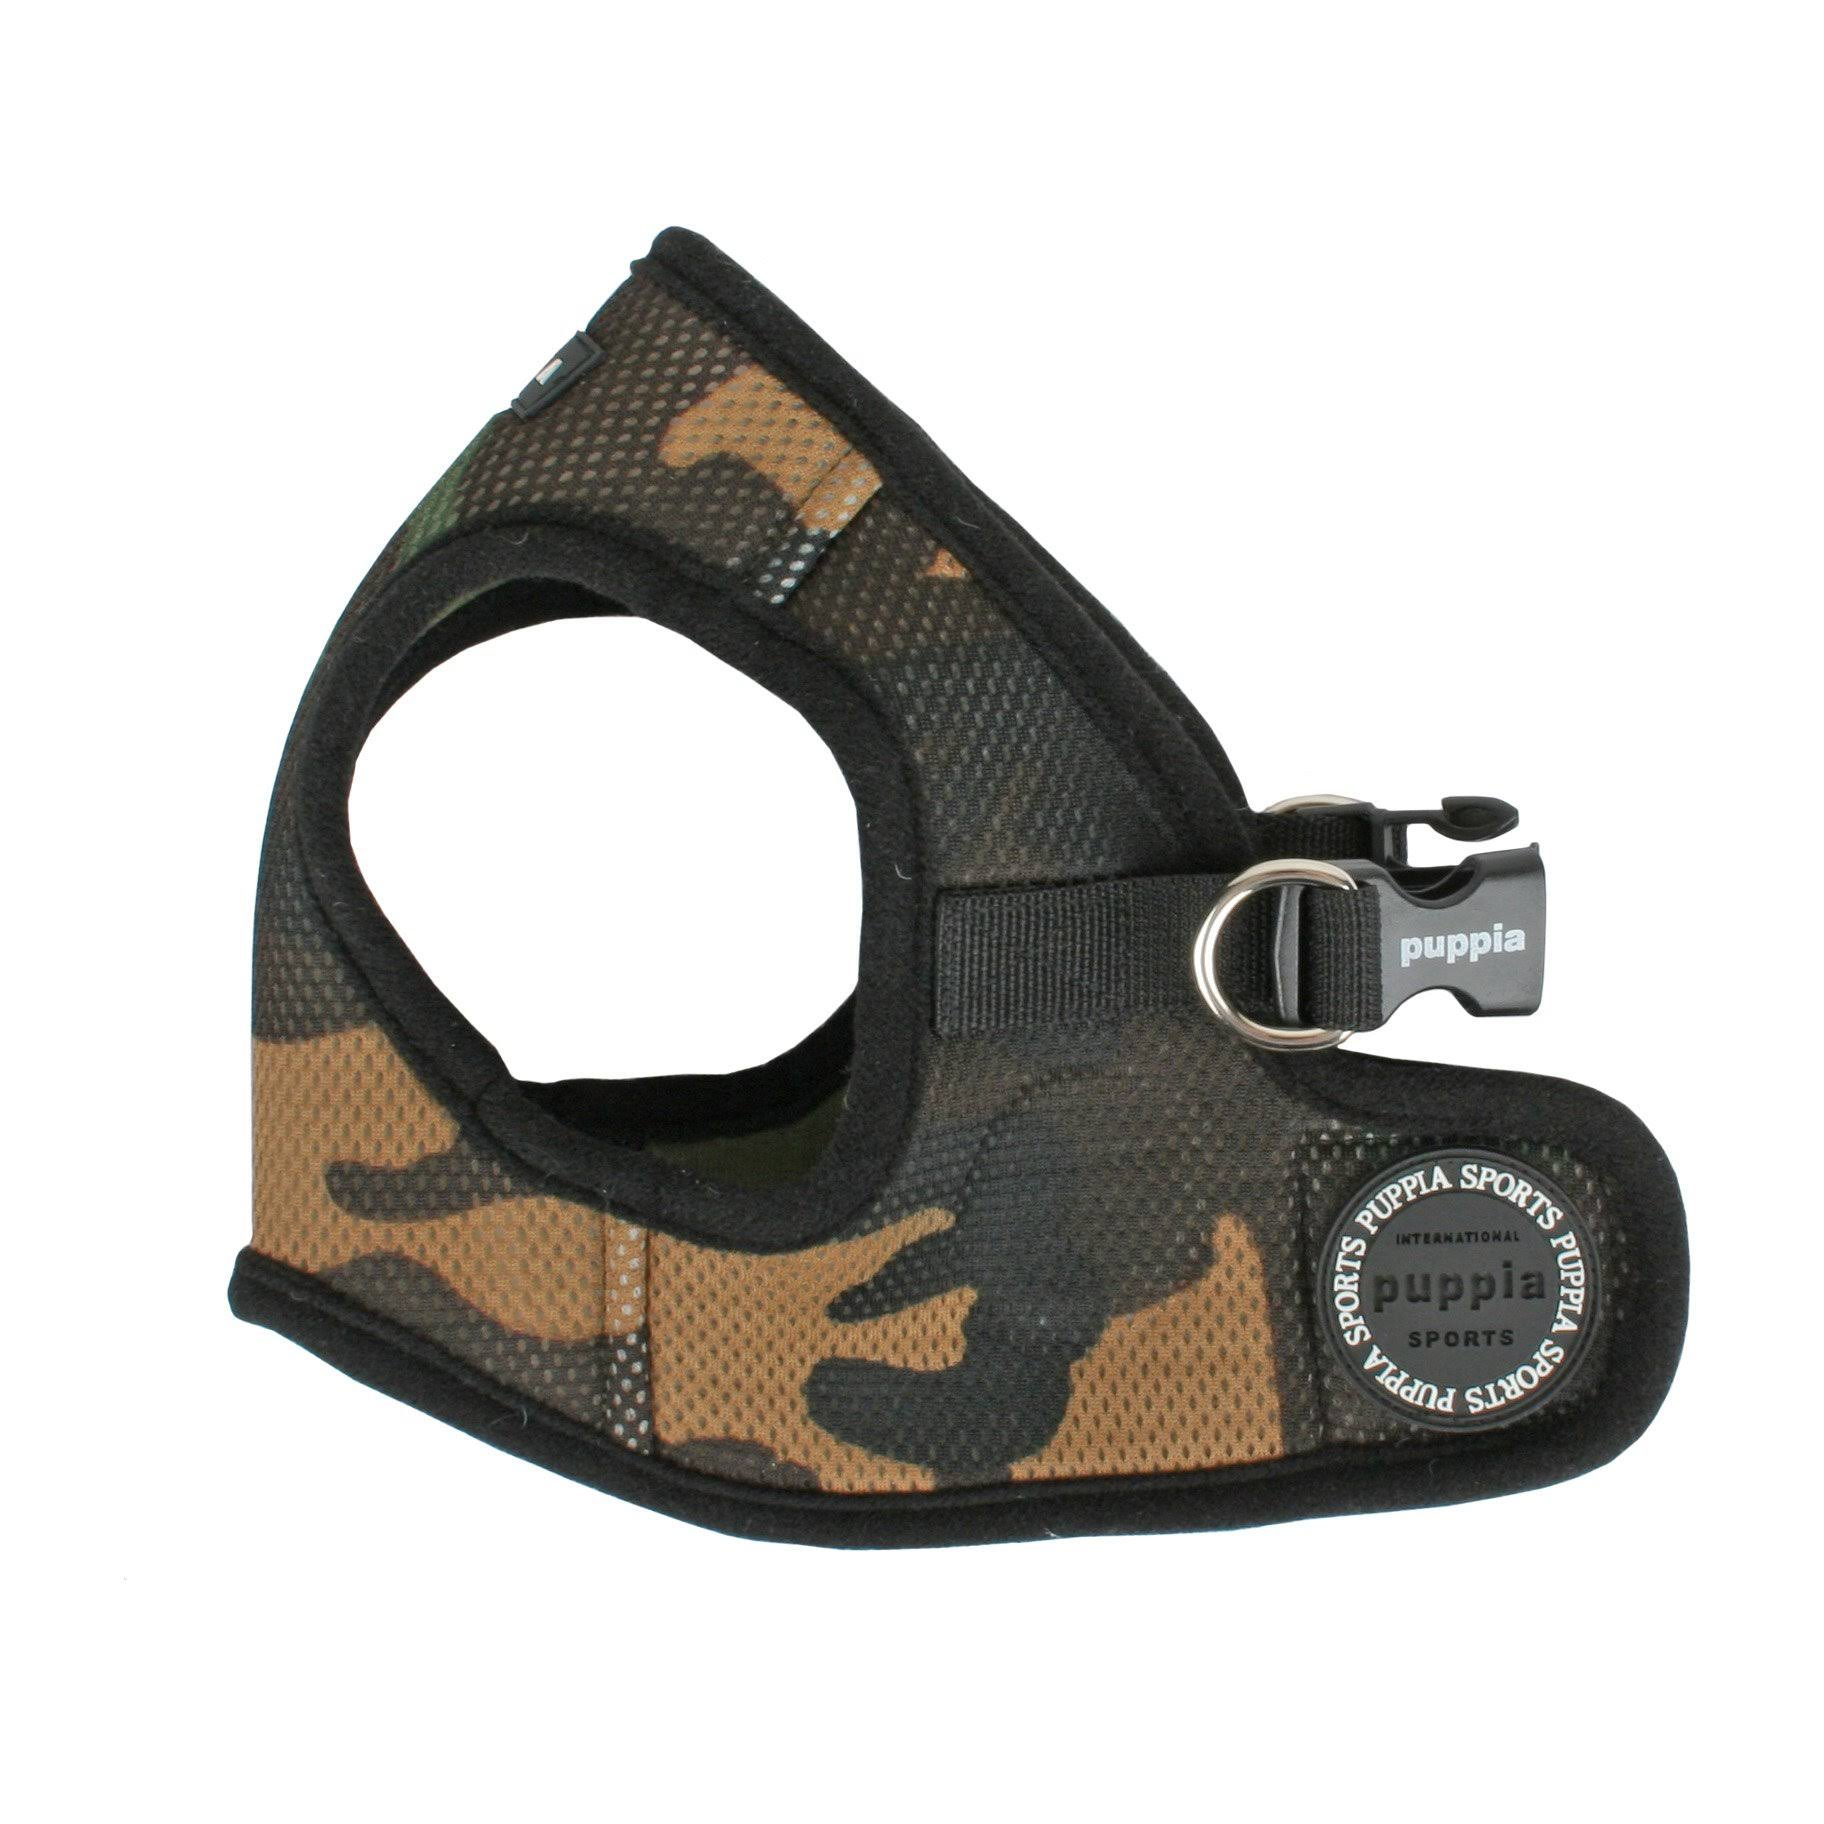 Puppia Dog Mesh Harness - Camo, X-Large